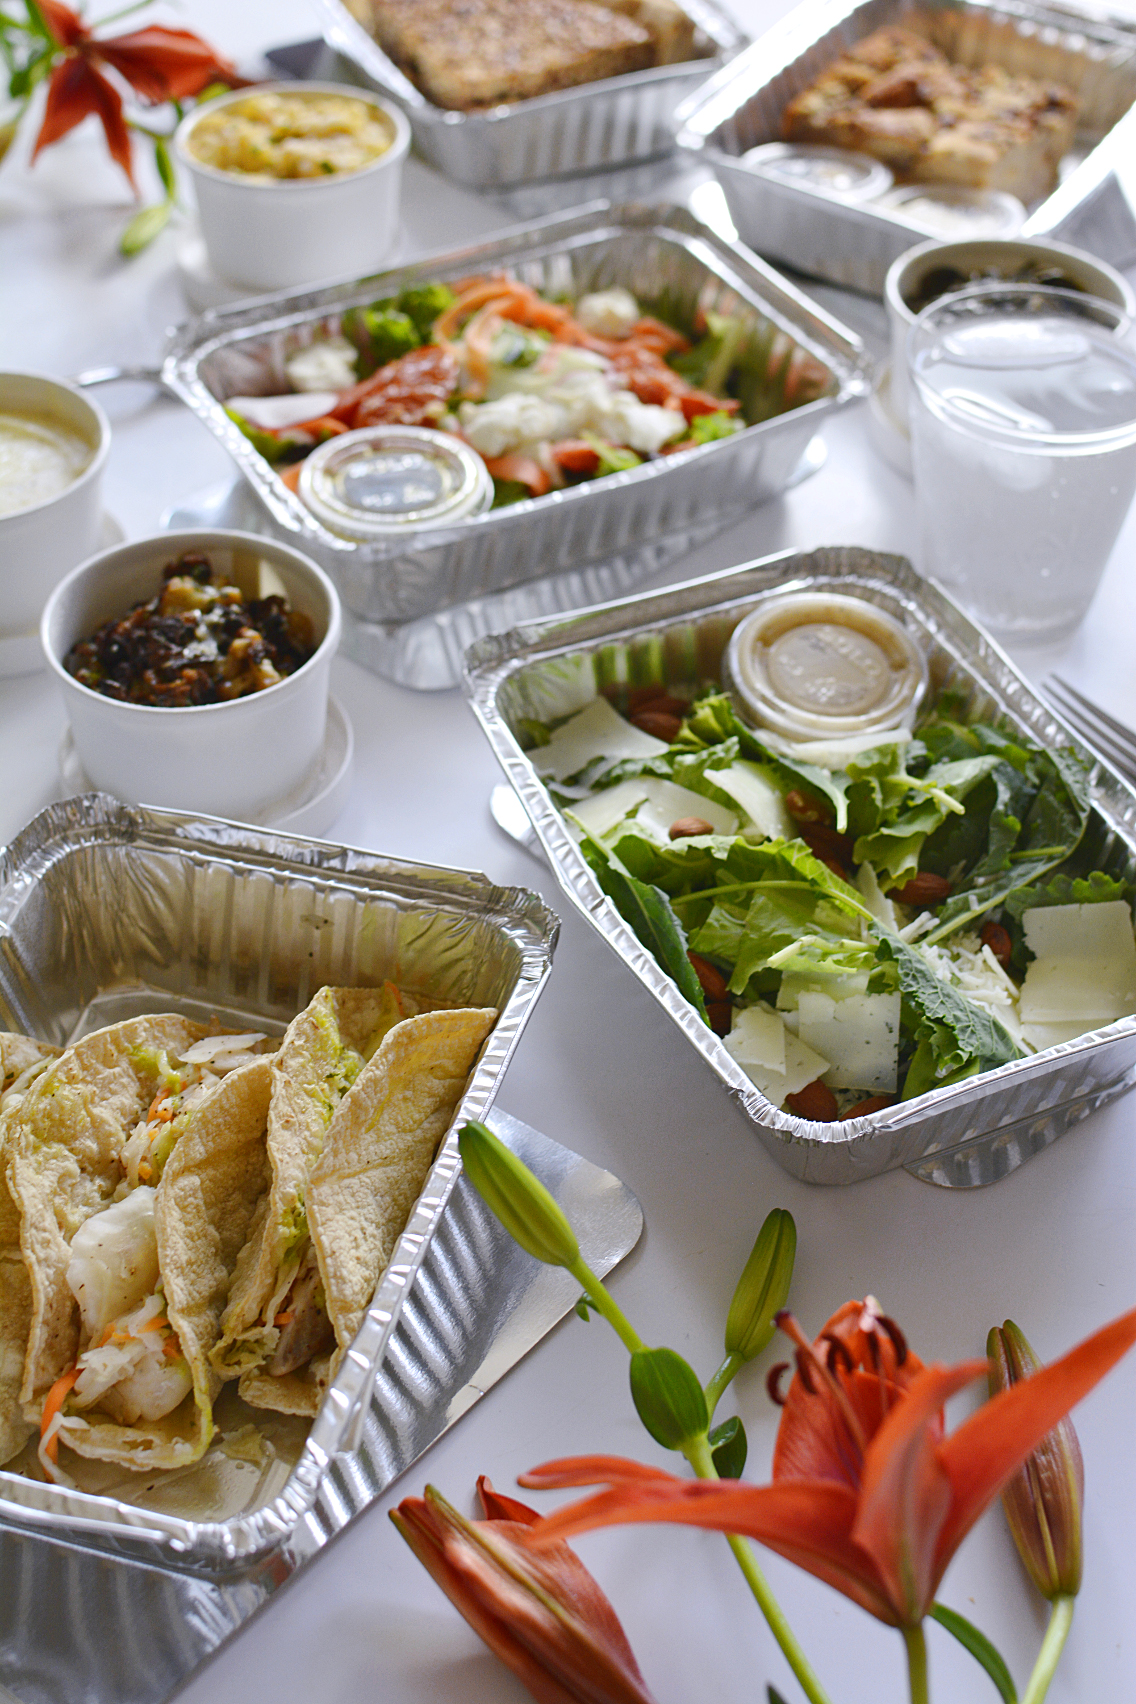 County BBQ DMK Chicago Delivery 1